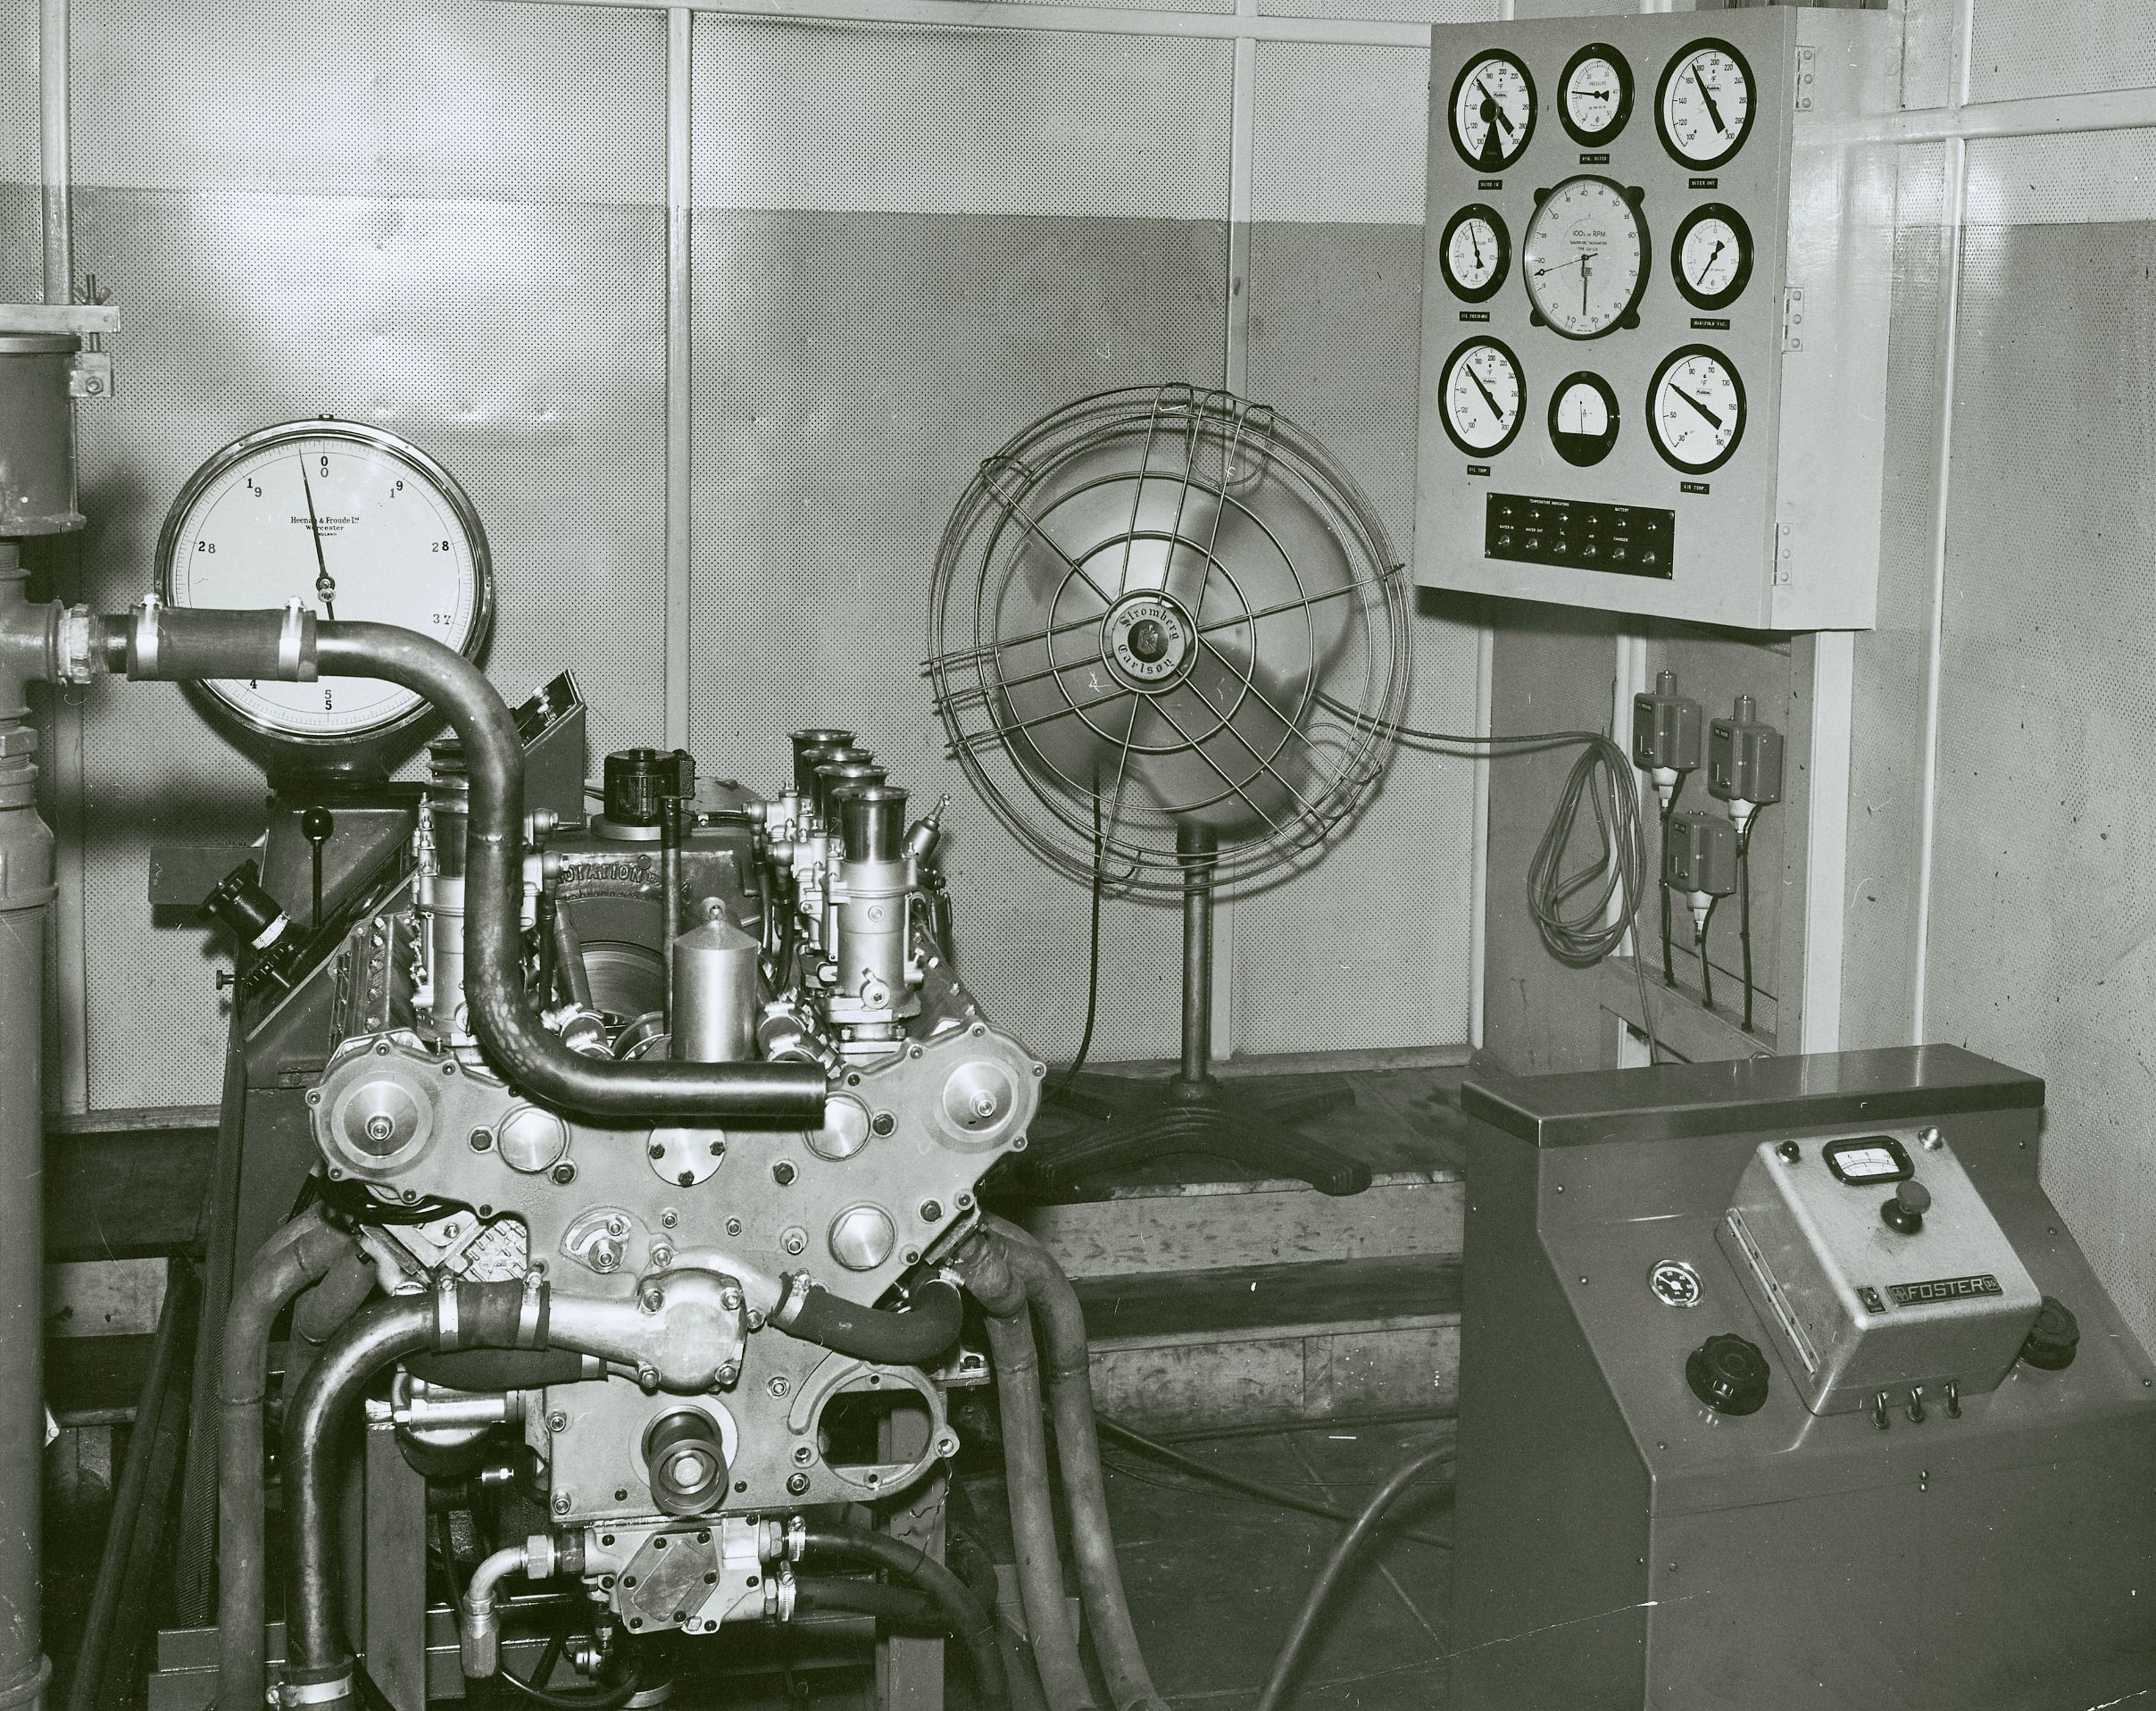 medium resolution of the very first repco rb620 v8 in the richmond test cell in 1965 weber carbs on this engine only repco